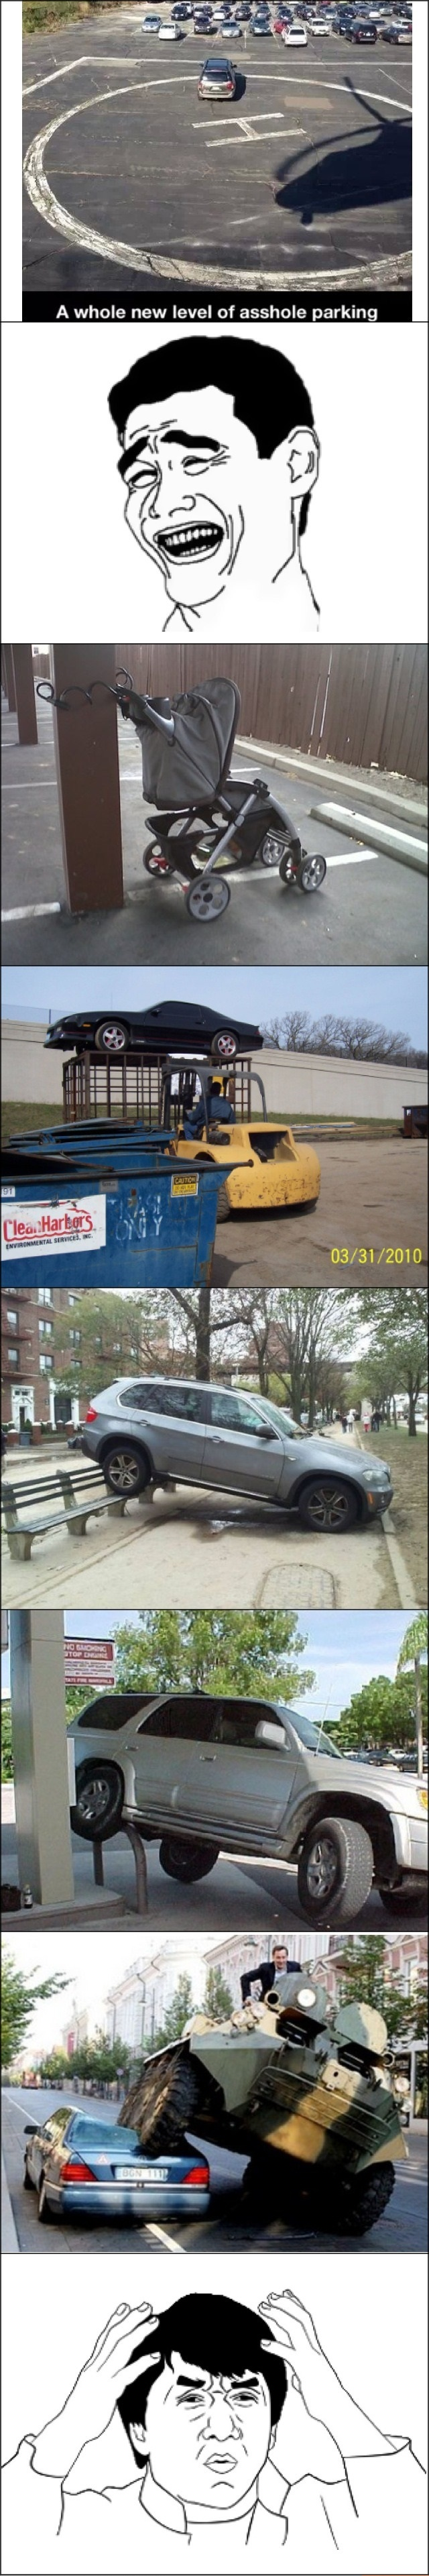 funny-picture-asshole-parking-compilation